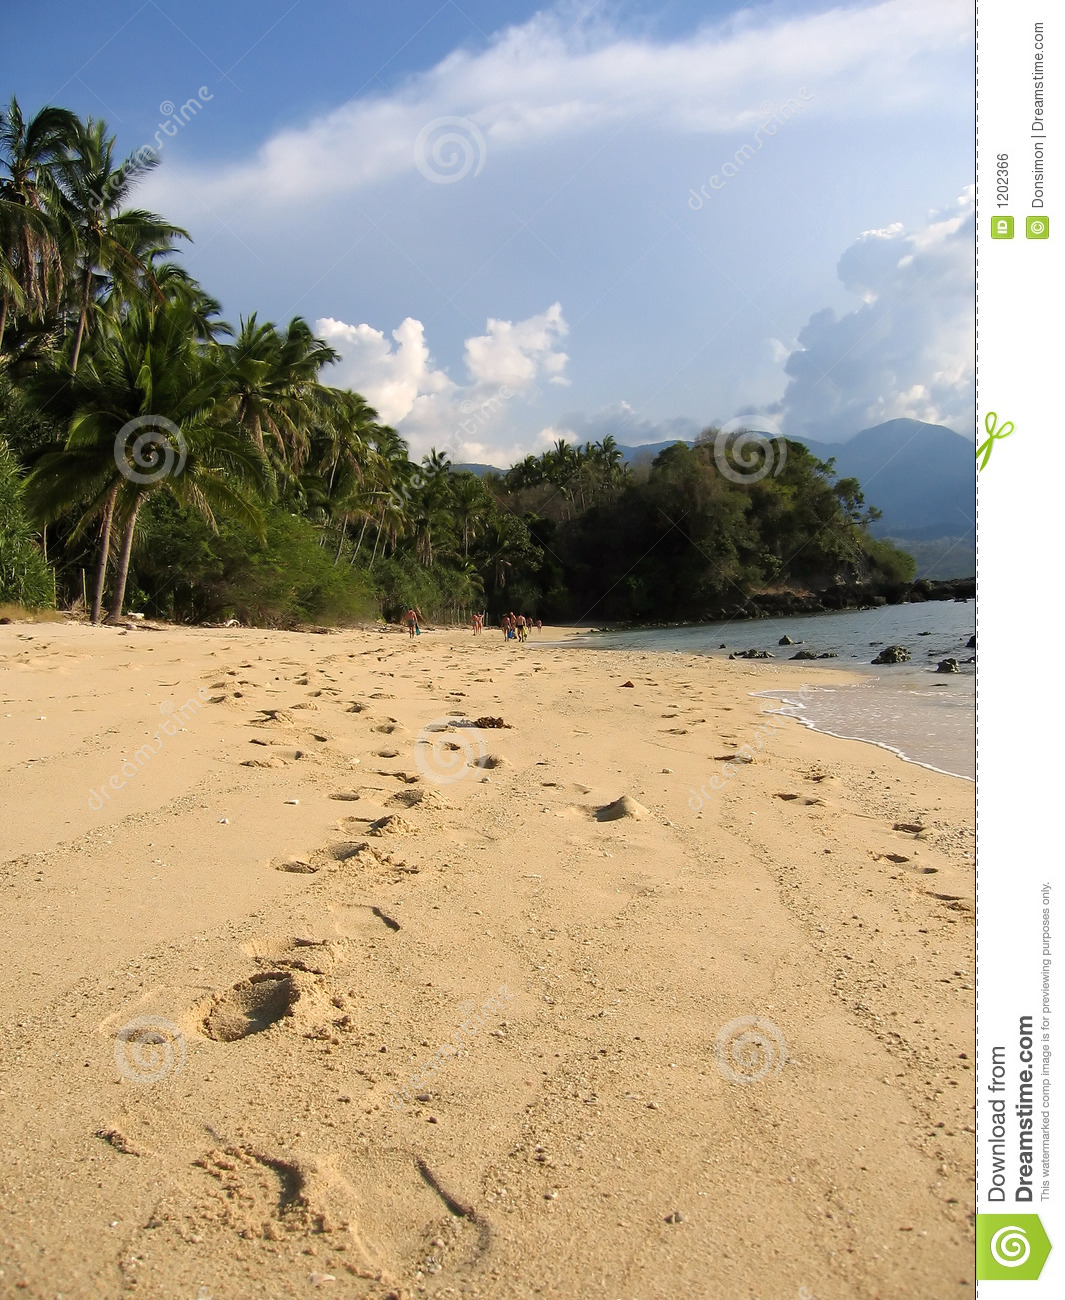 Footsteps in the sand philippines beach